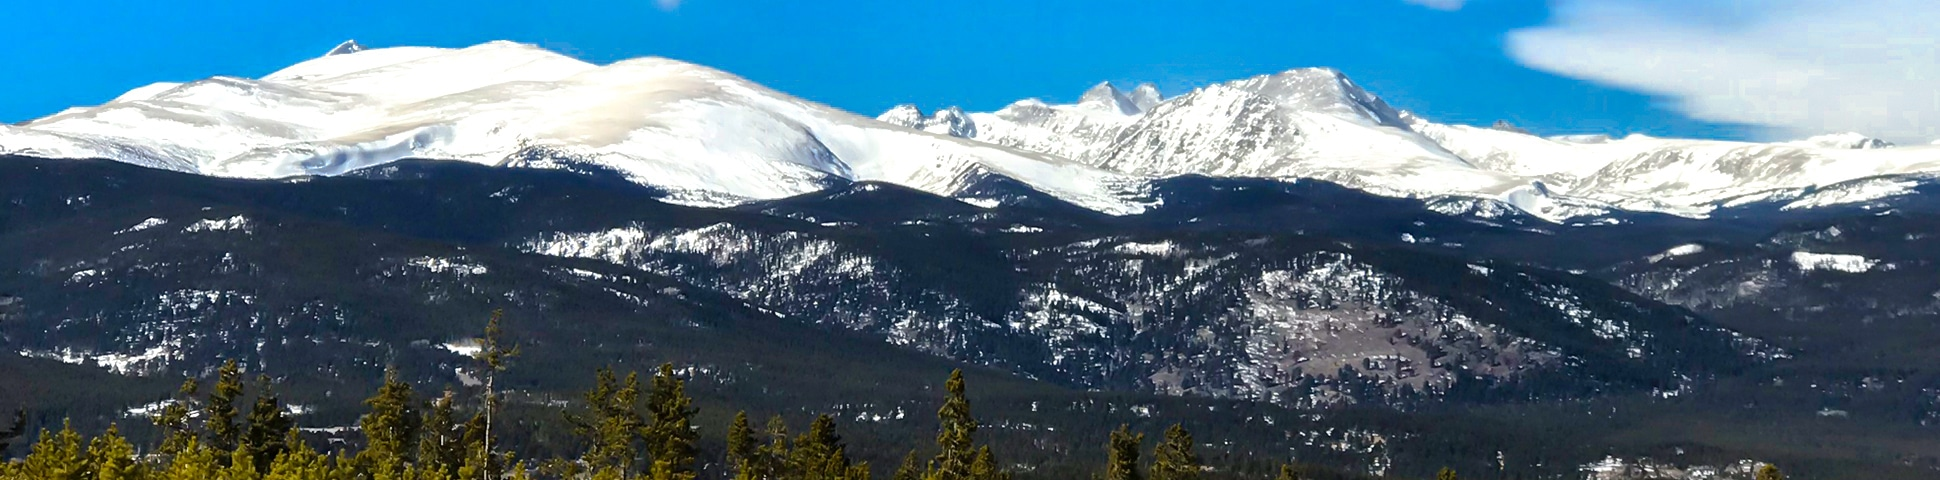 Panorama on Dot snowshoe trail in Indian Peaks, Colorado